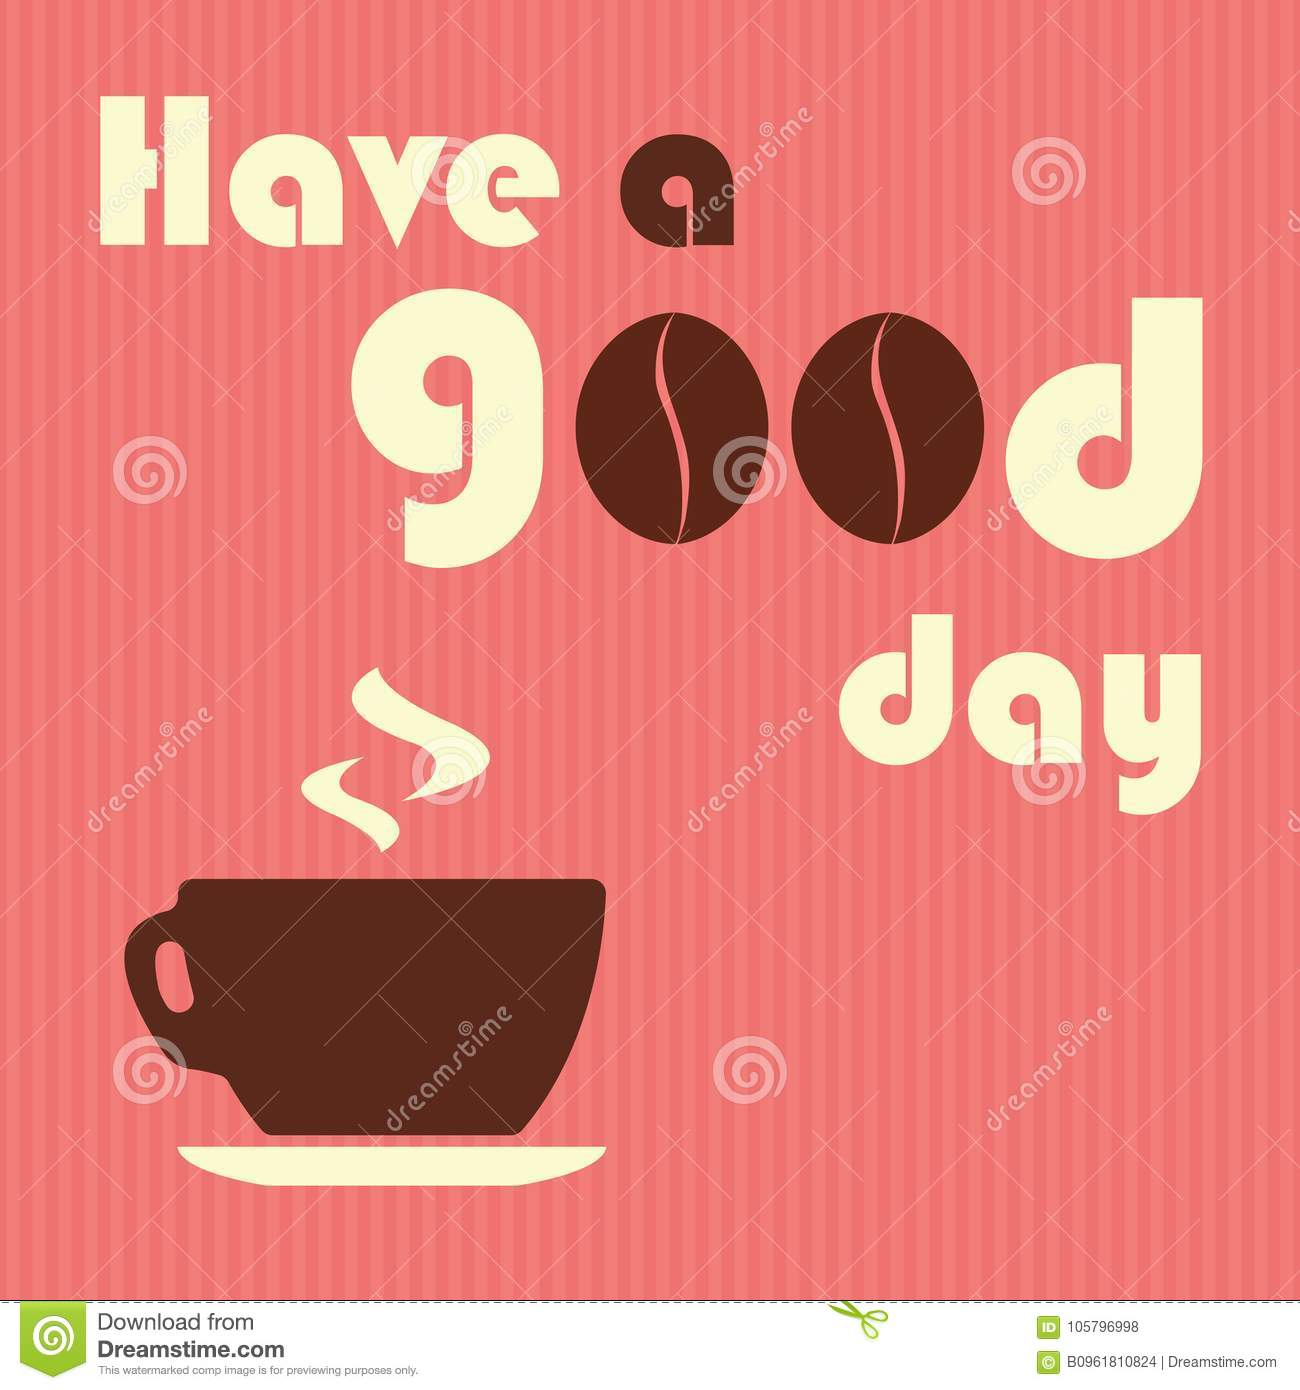 Have A Good Day Quotes Design For Coffee Shop Restaurants M